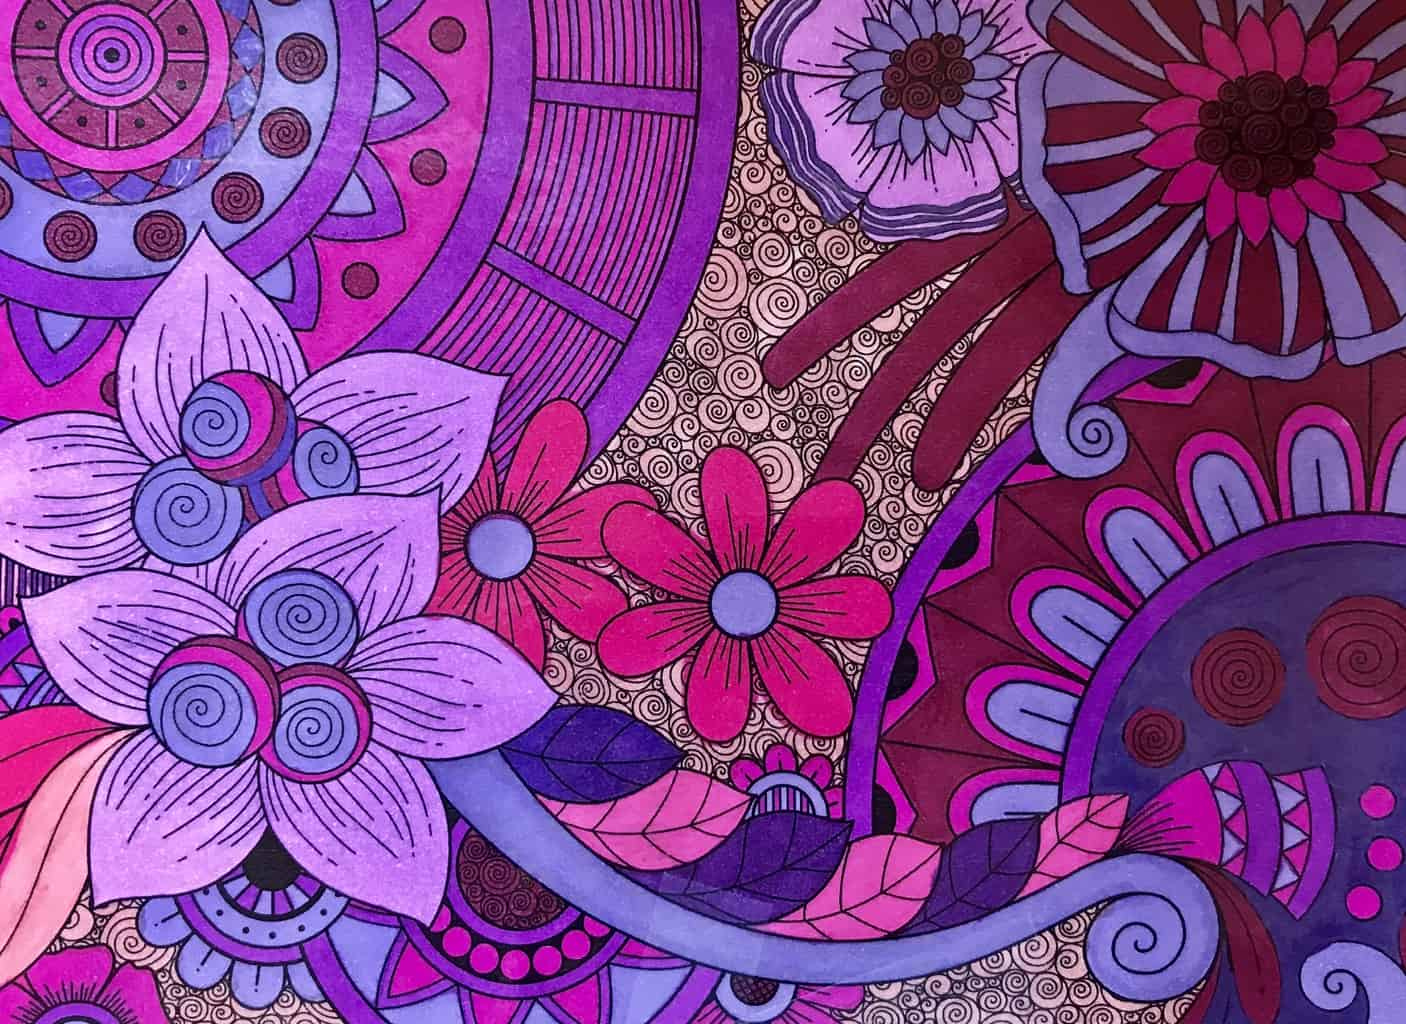 Color Happy Coloring Pages for Adults – Spreading Joy Through Color